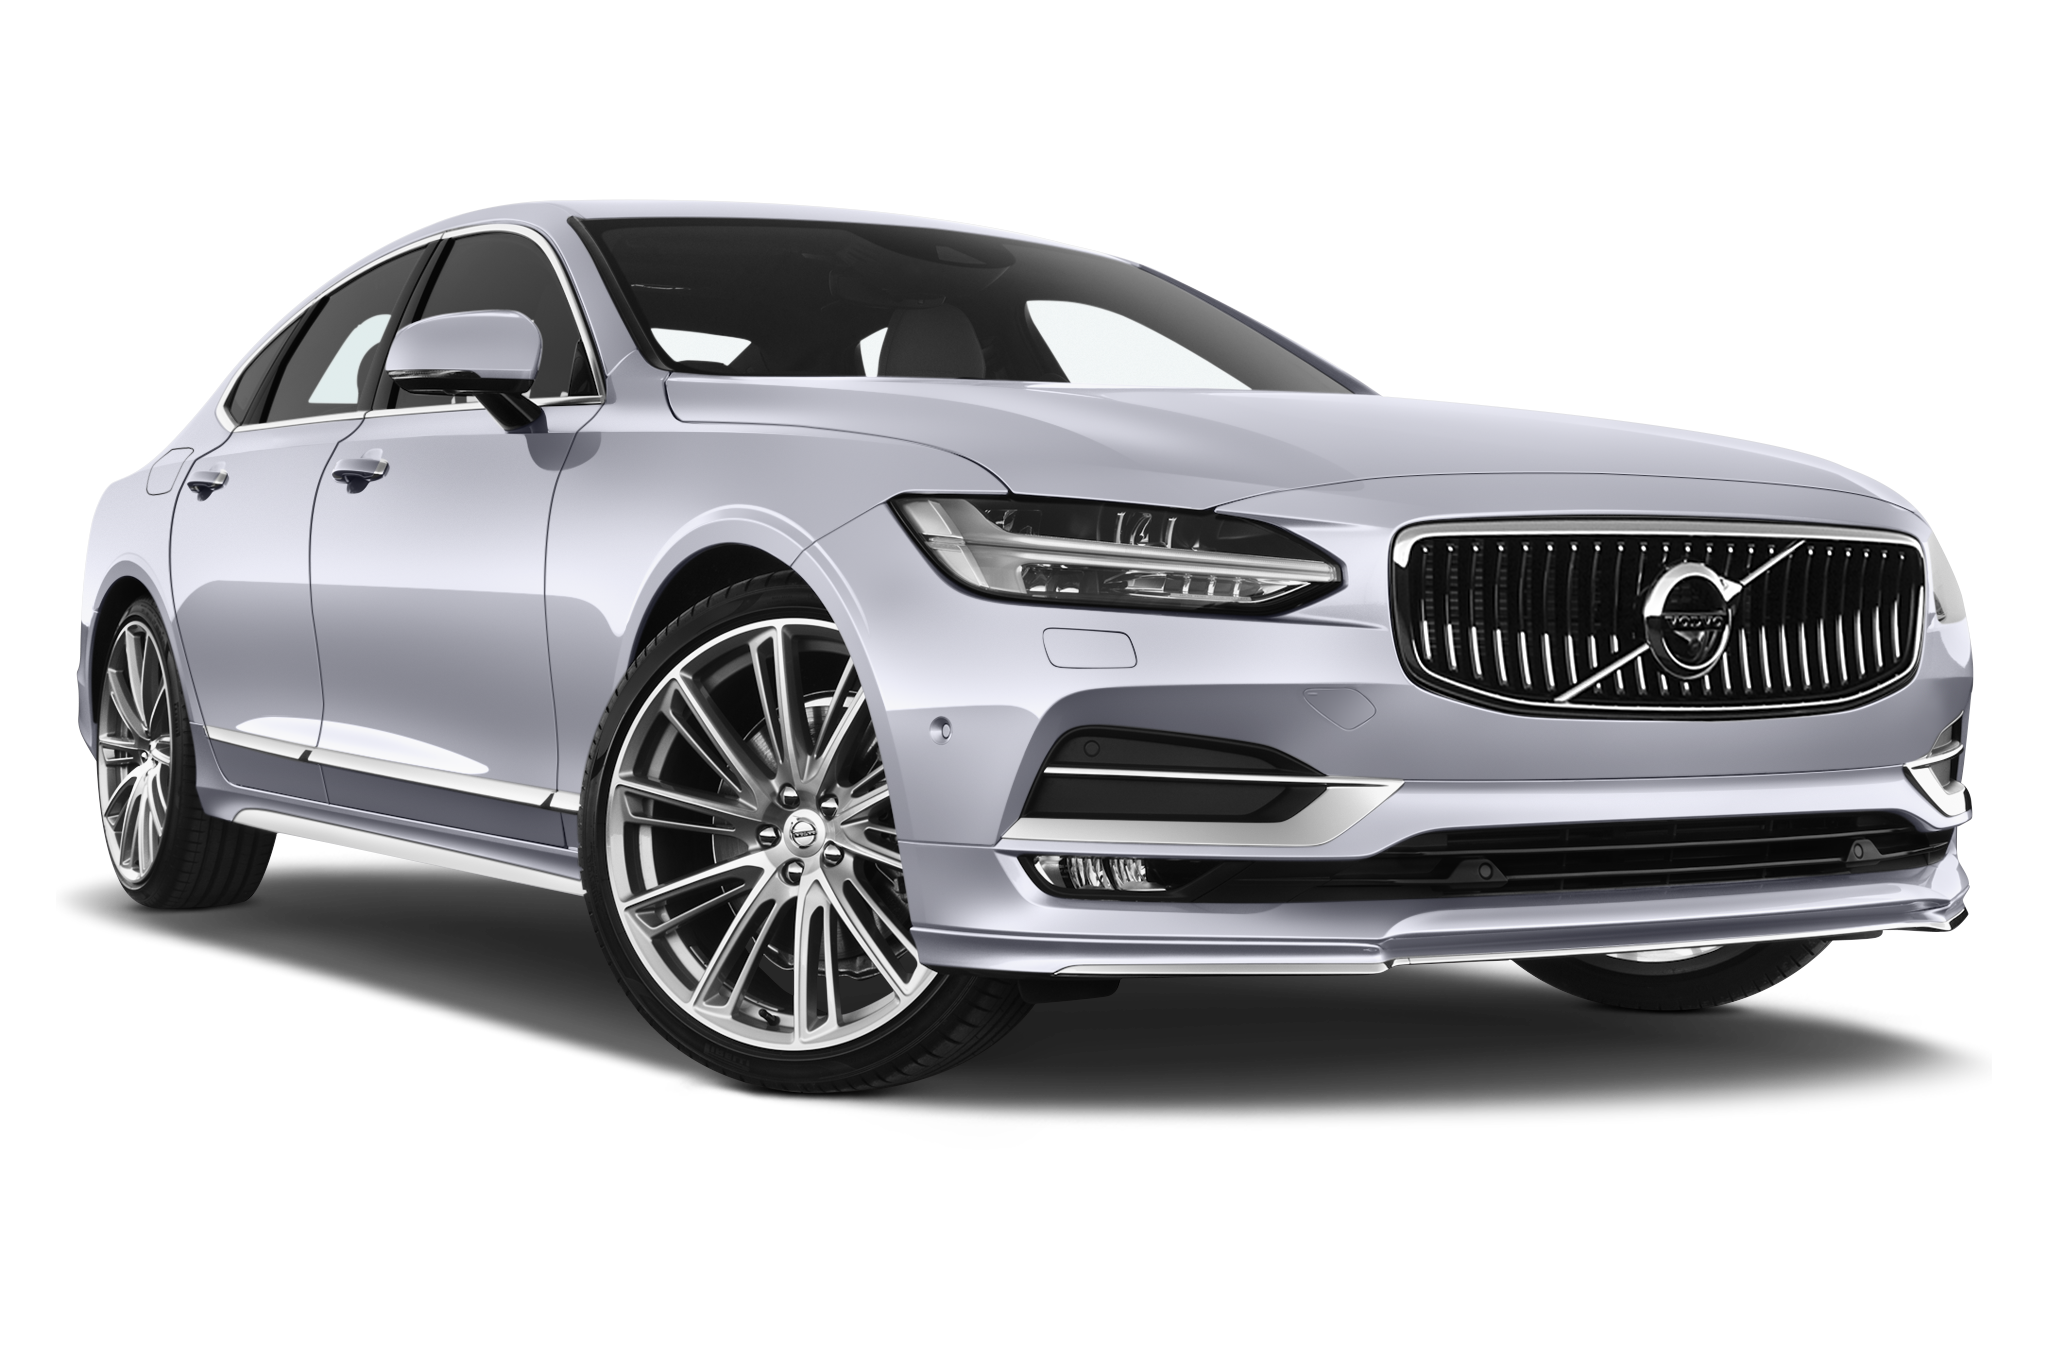 Volvo S90 company car front view